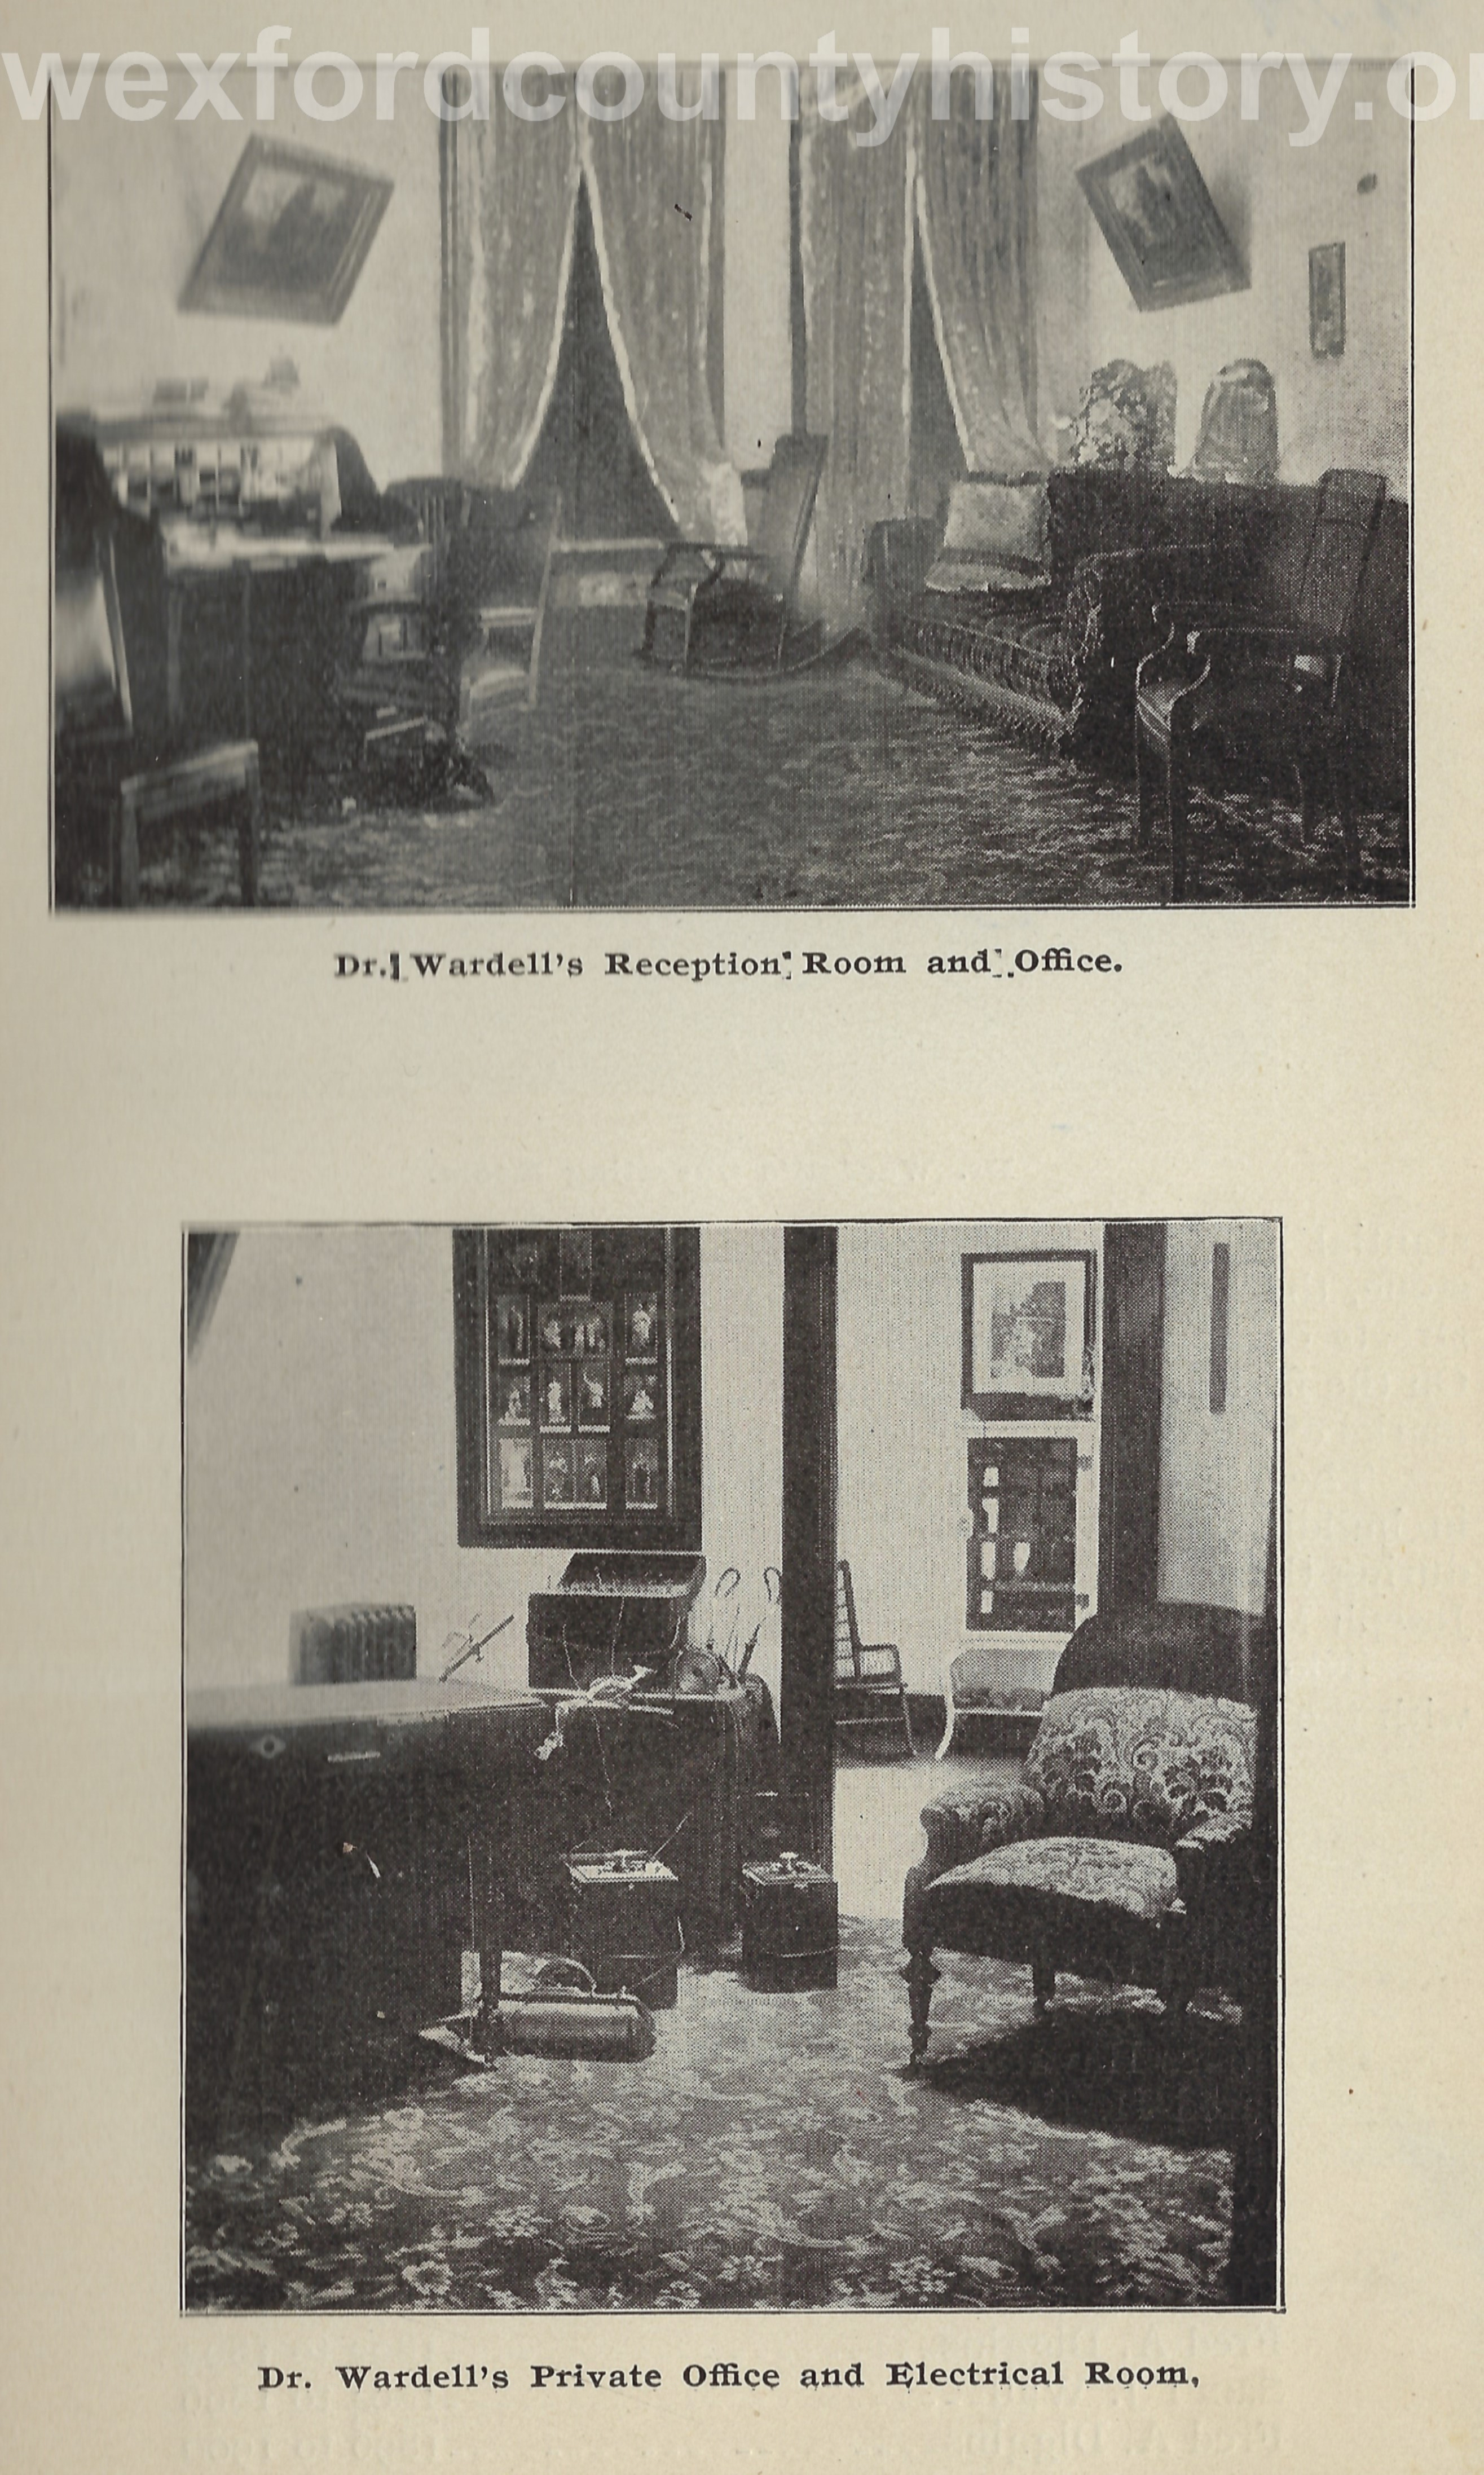 Dr. Wardell's Office